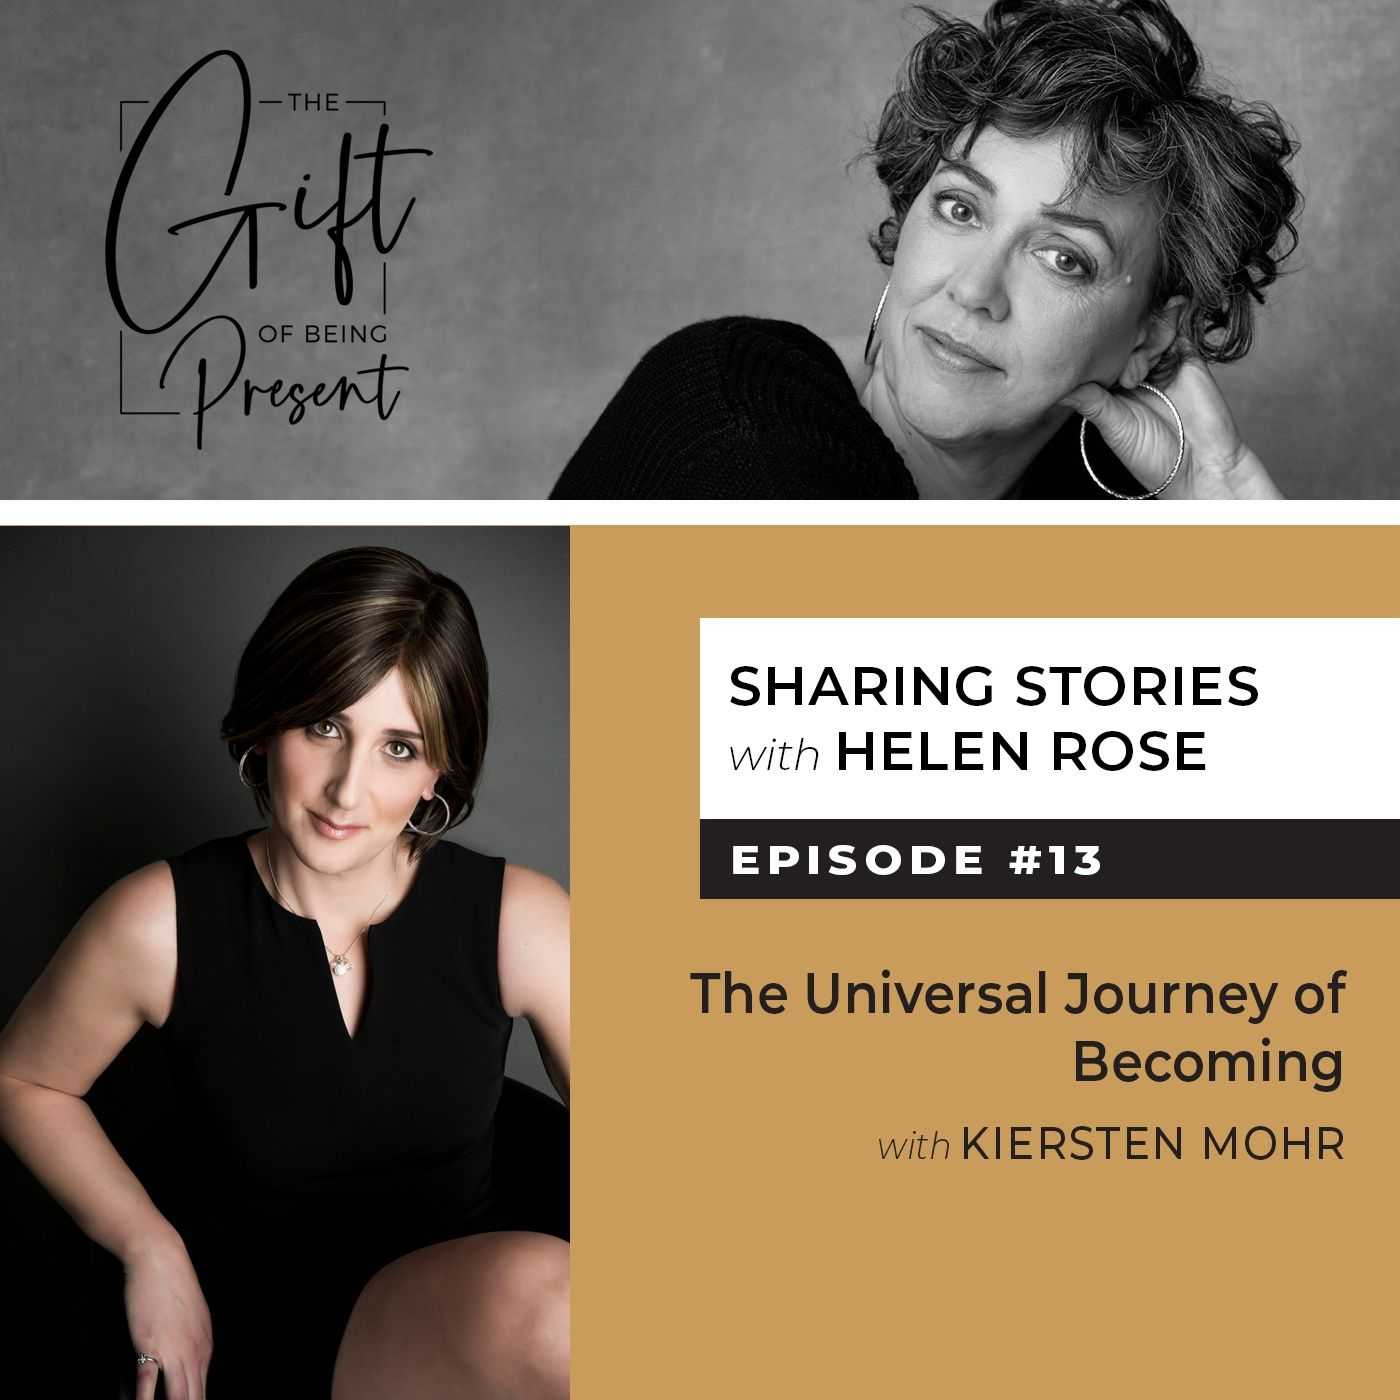 The Universal Journey of Becoming with Kiersten Mohr